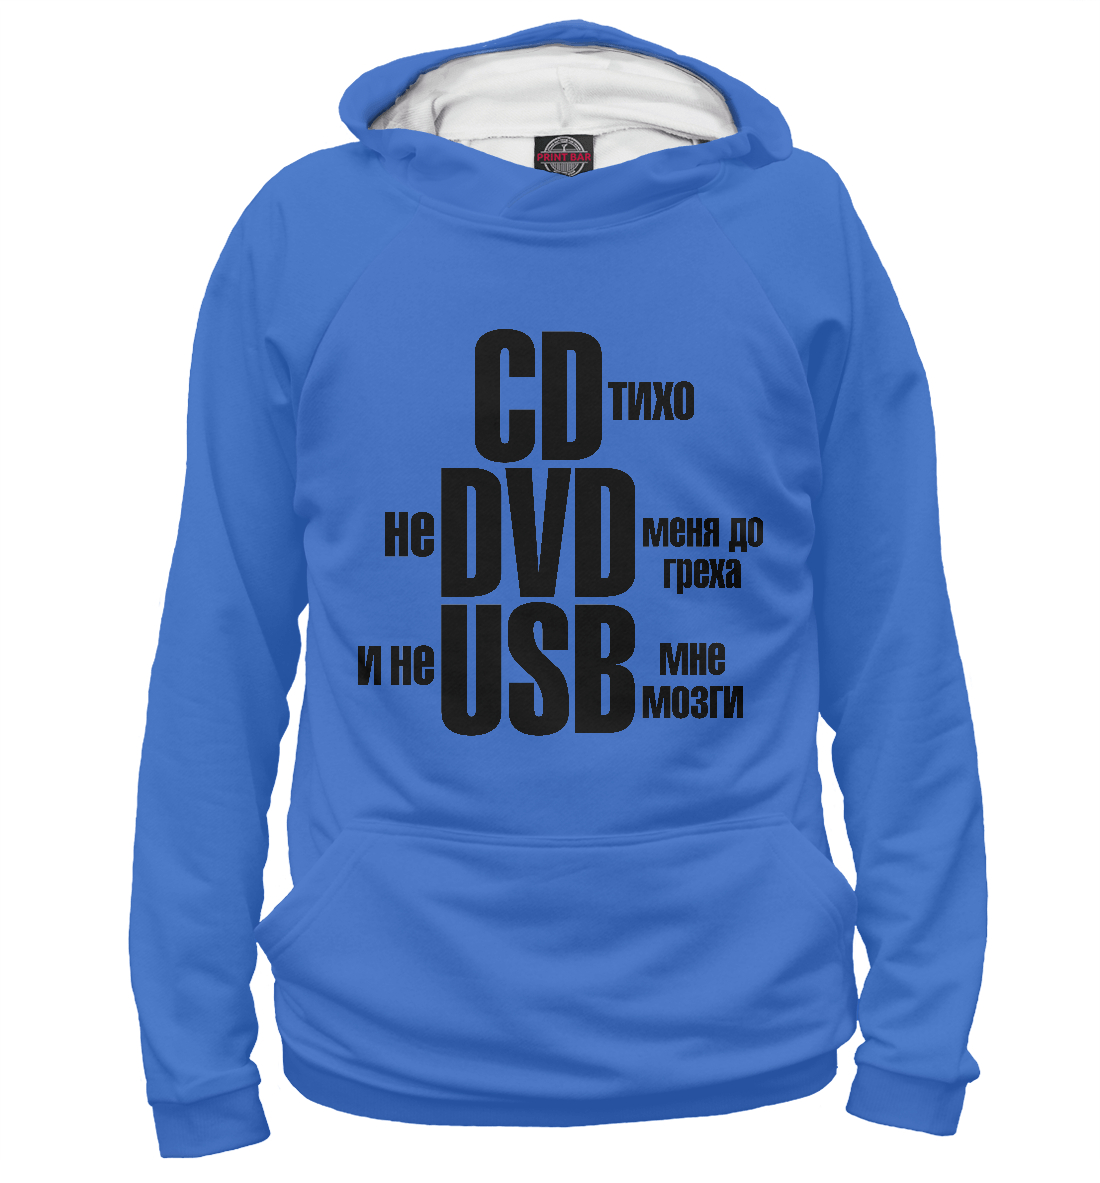 CD, DVD, USB